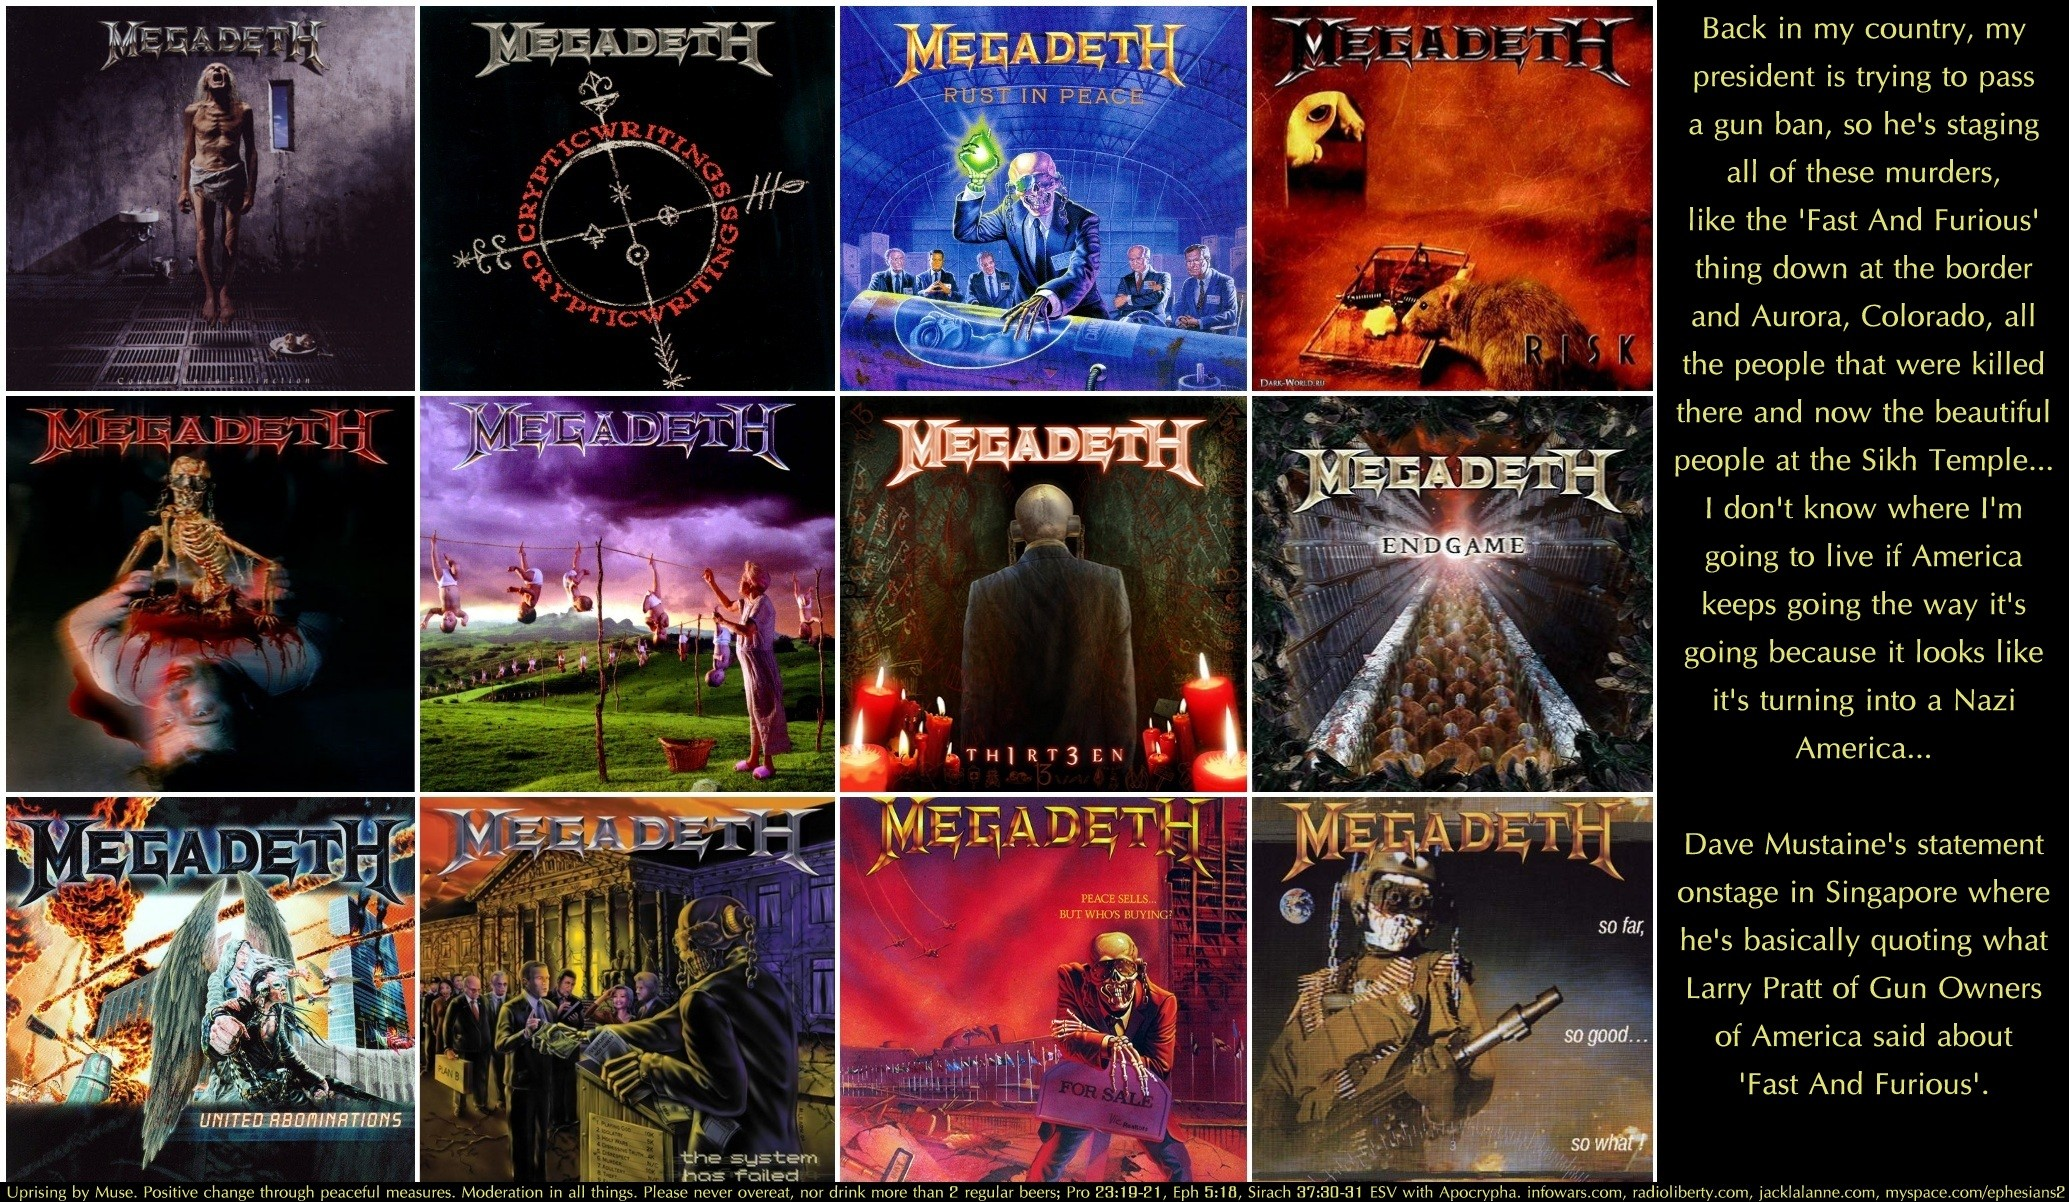 Res: 2069x1202, Tags: freedom guns cool Entertainment megadeth Music rights quotes  Religious christian dave mustaine art thrash